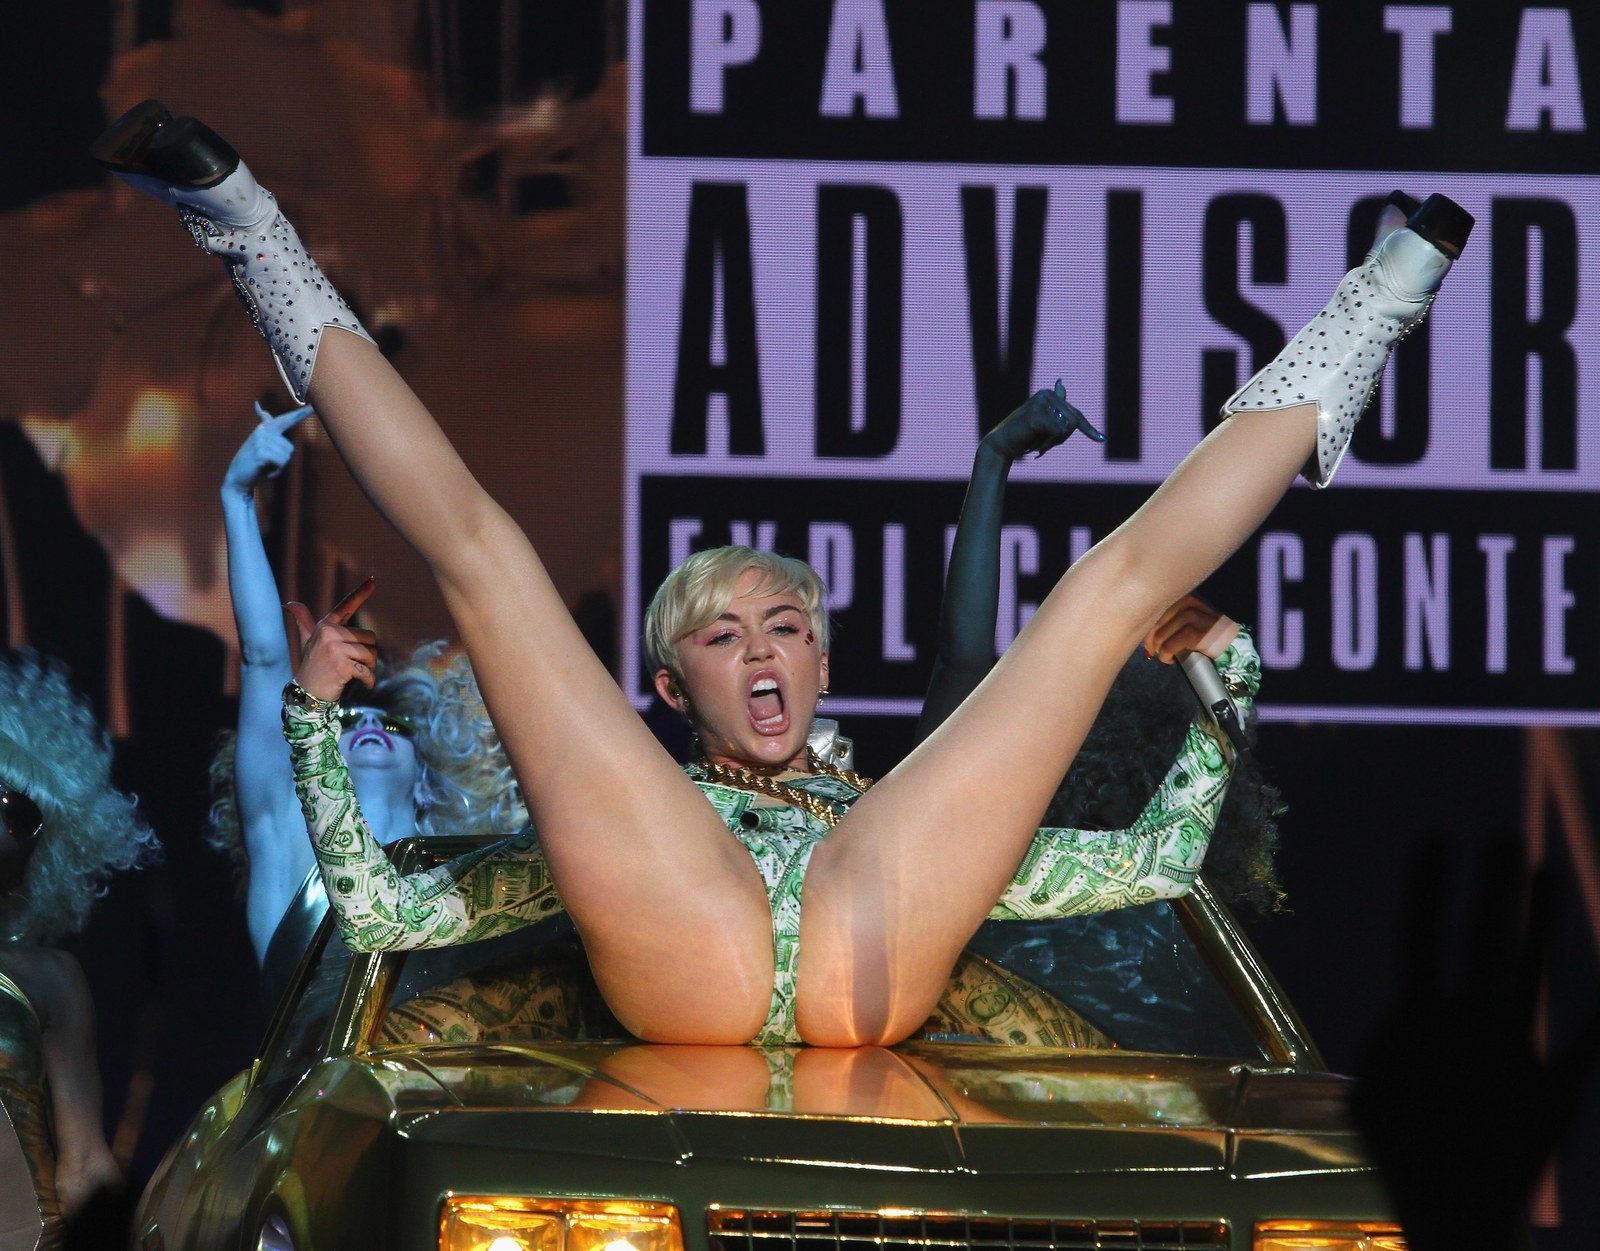 Miley Cyrus performing on her Bangerz Tour in Dublin in May 2014.